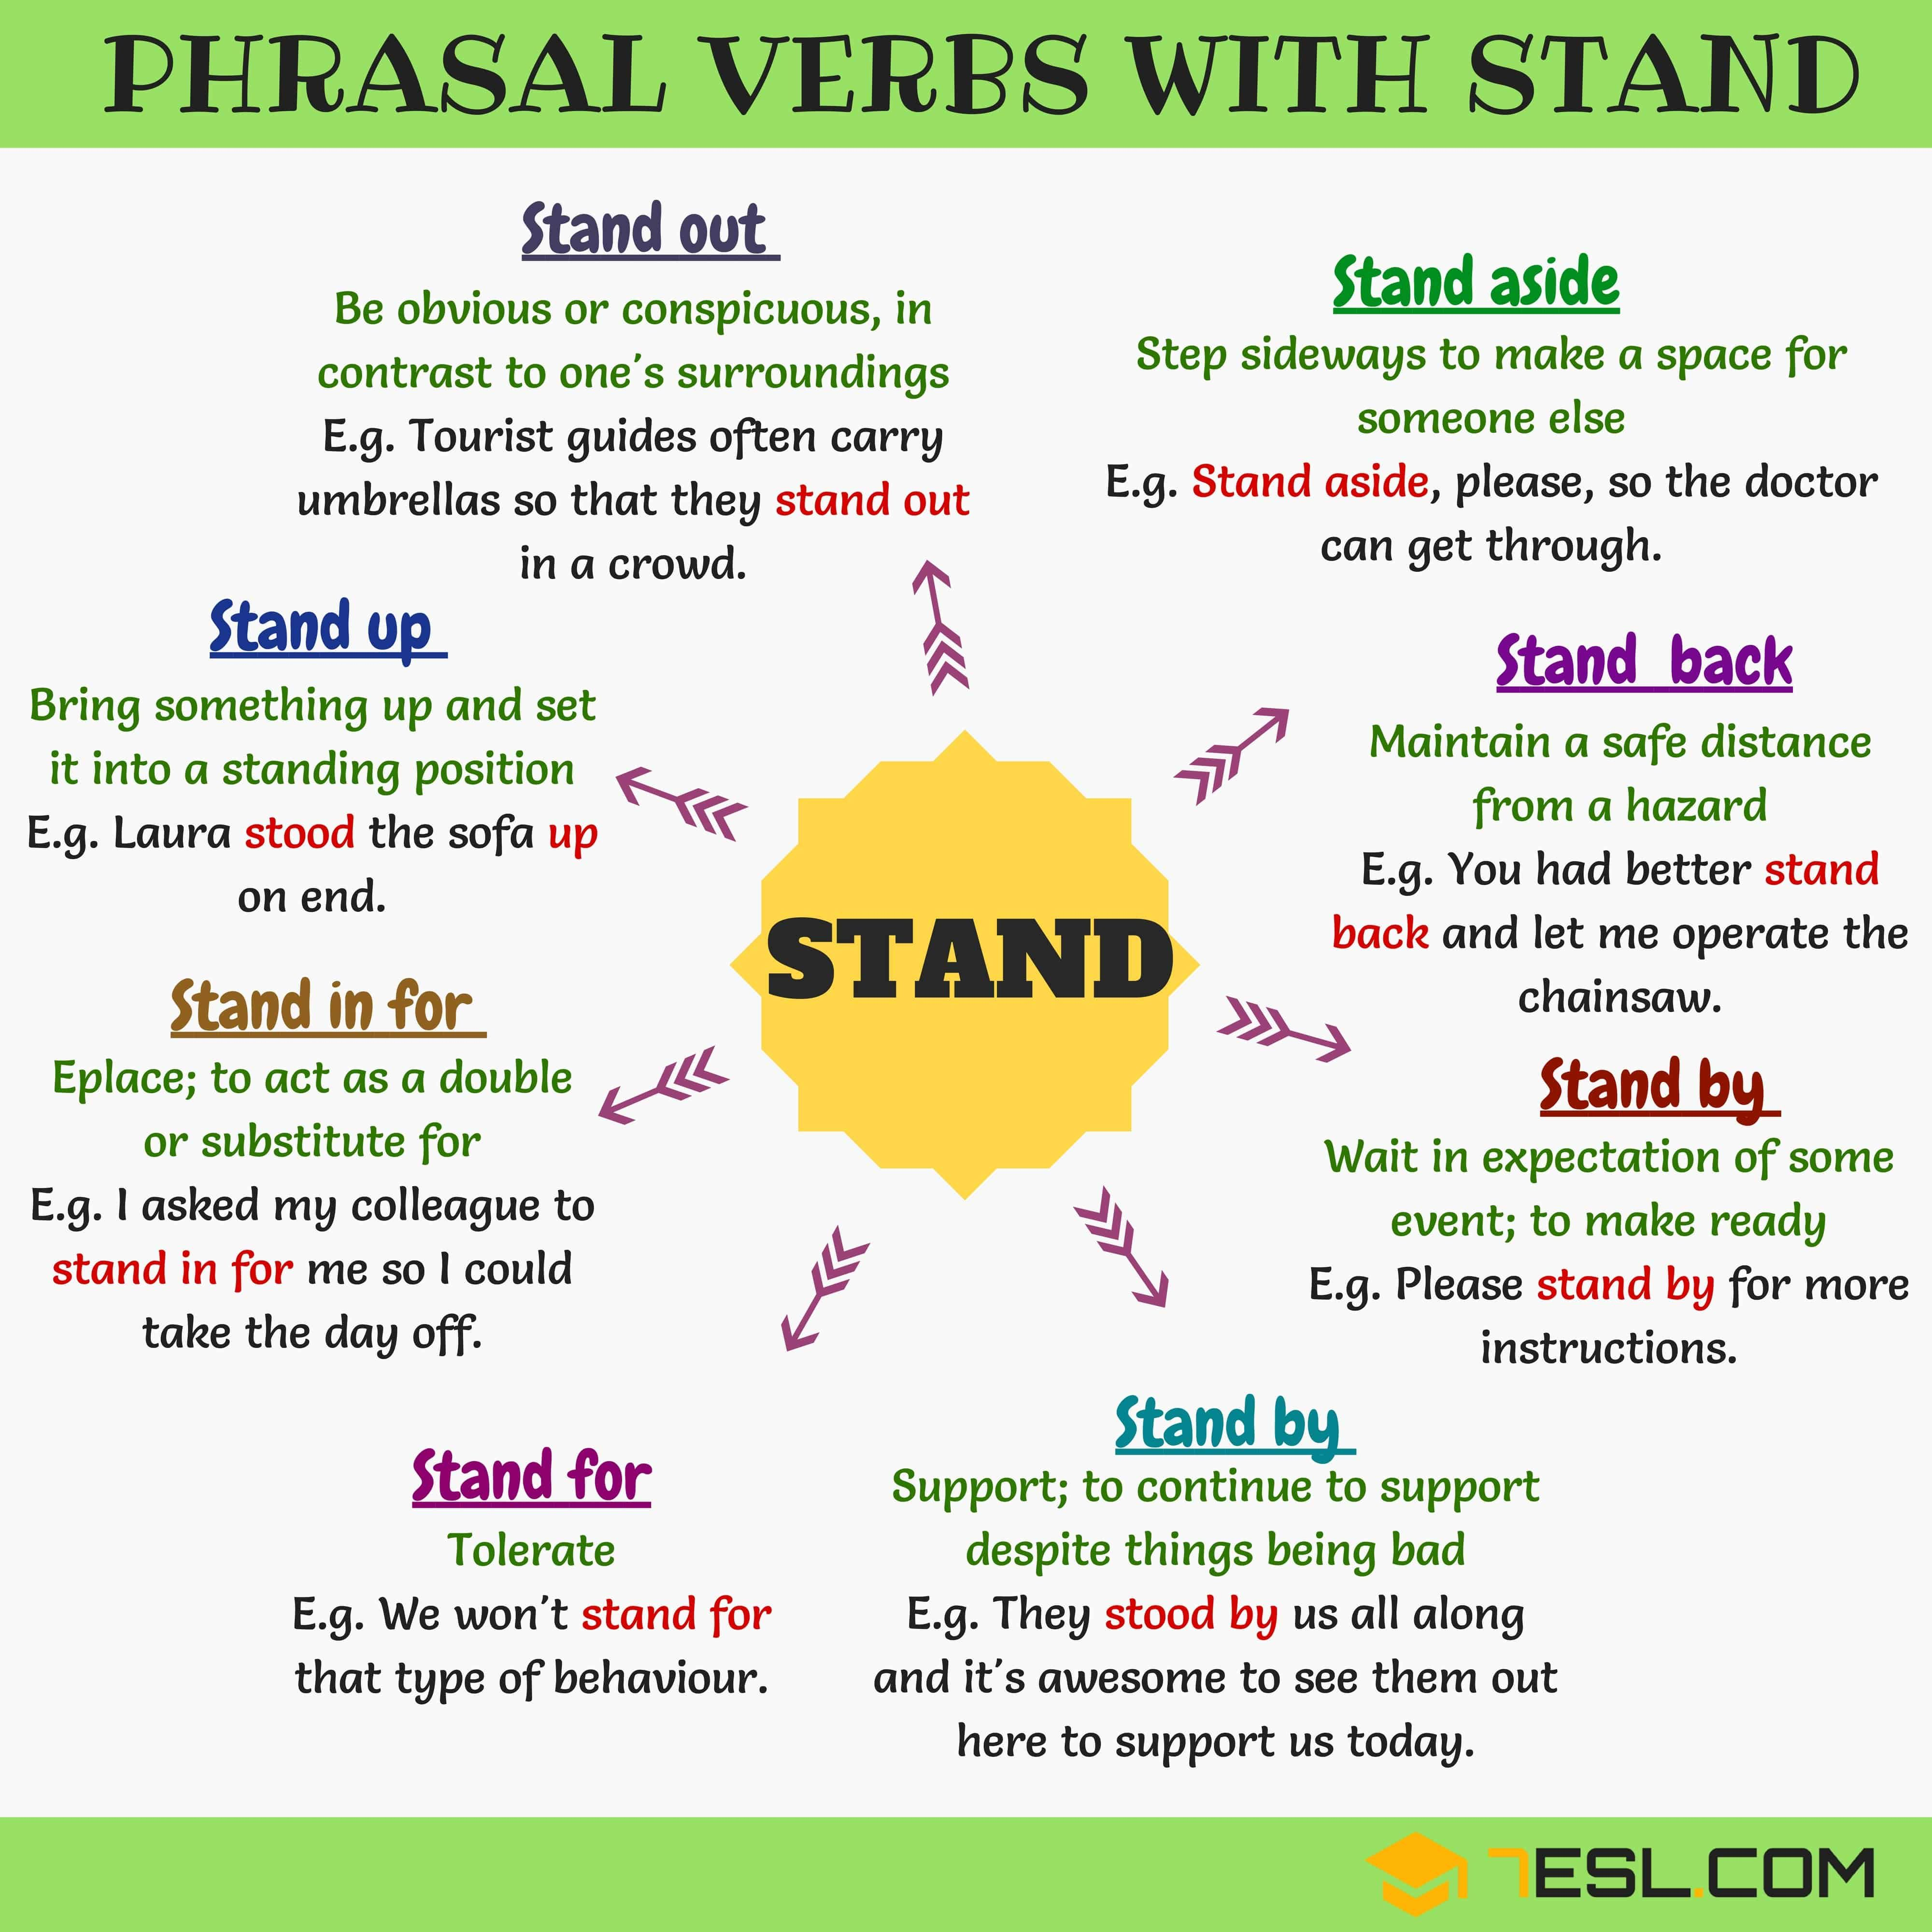 23 Phrasal Verbs With Stand Stand Aside Stand By Stand Out Stand Up 7 E S L English Verbs English Vocabulary English Phrases [ 4000 x 4000 Pixel ]